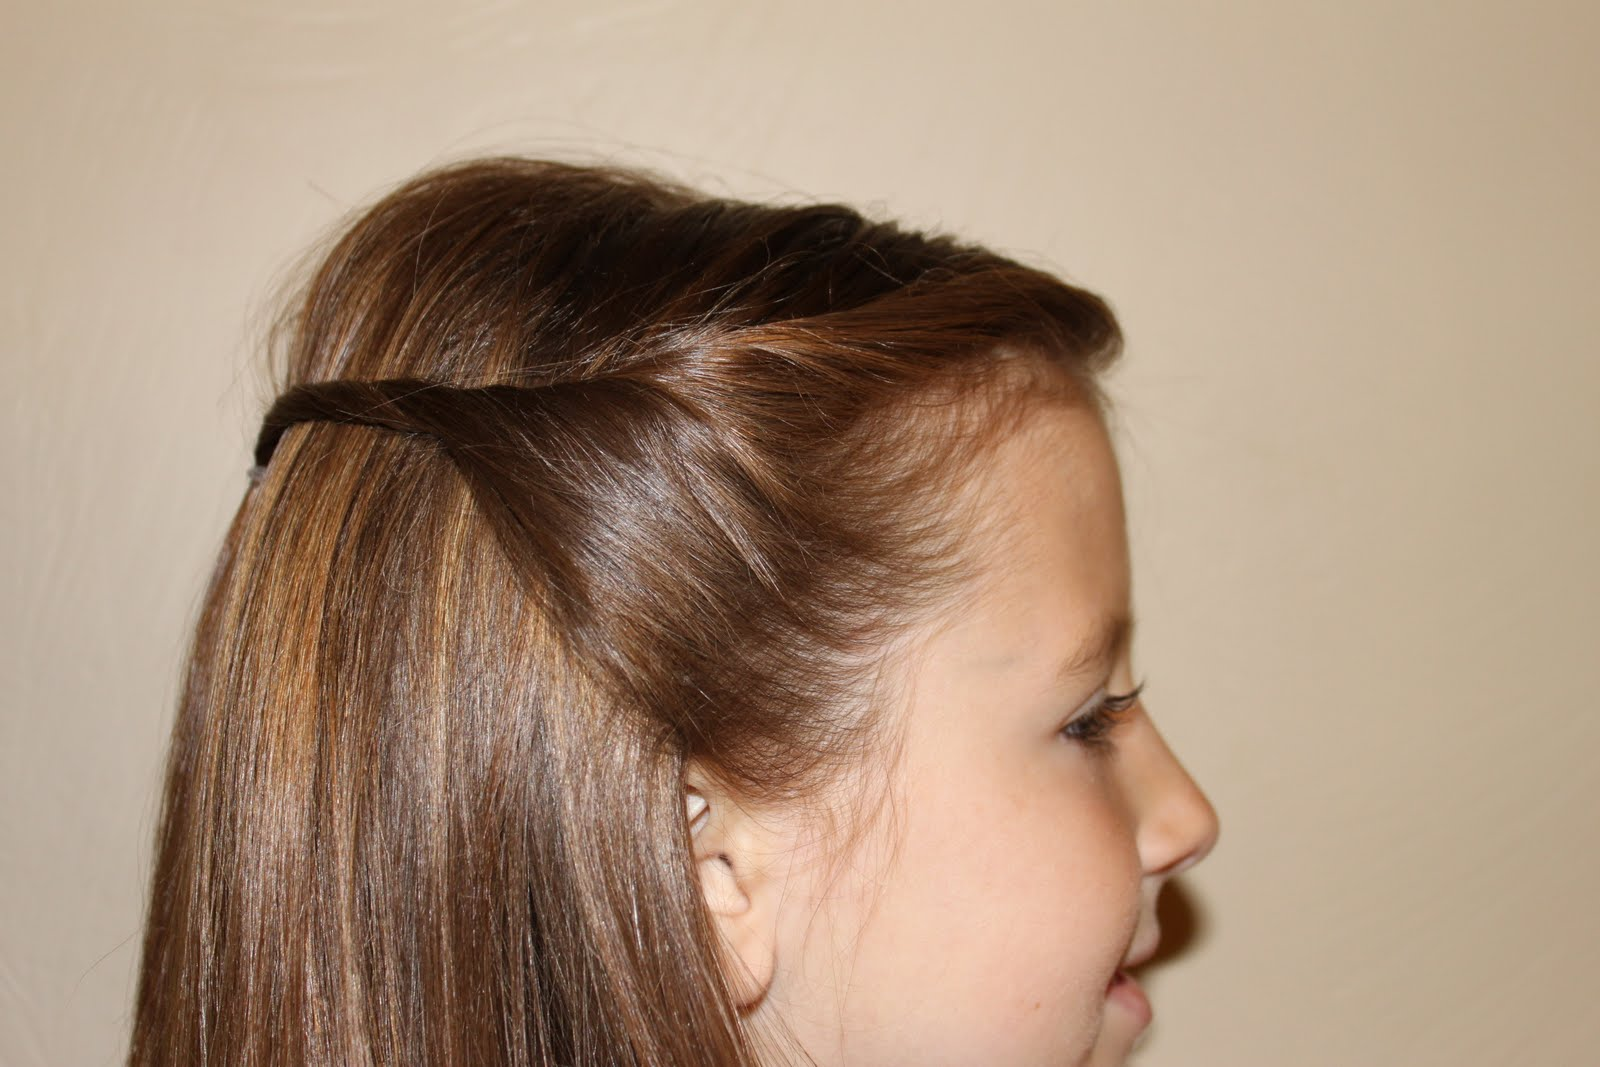 Pulled Back Hair Styles: Hairstyles For Girls.. The Wright Hair: Sides Pulled Back